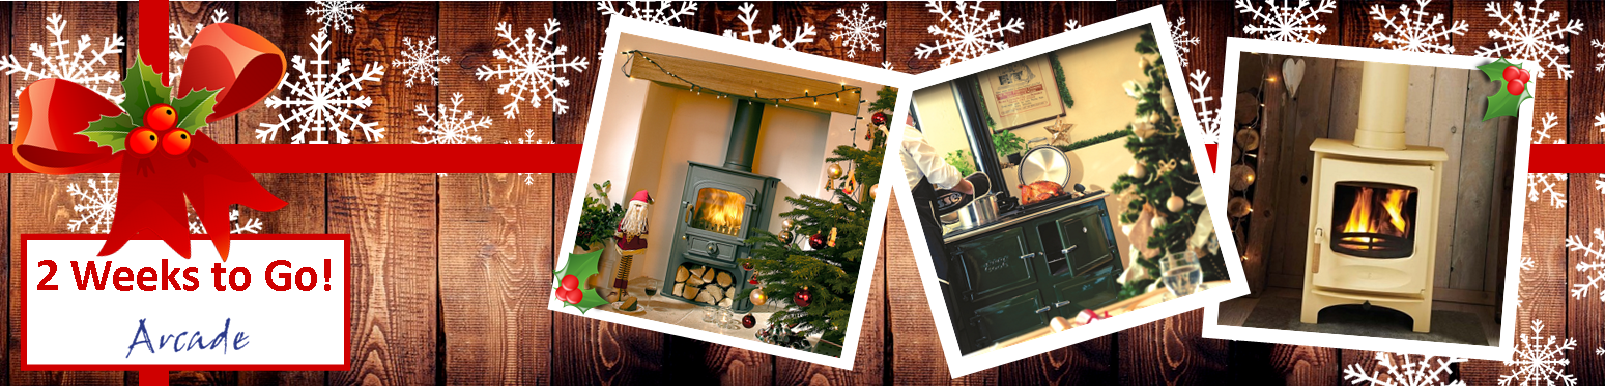 2 Weeks to Go - 12 Stoves of Christmas